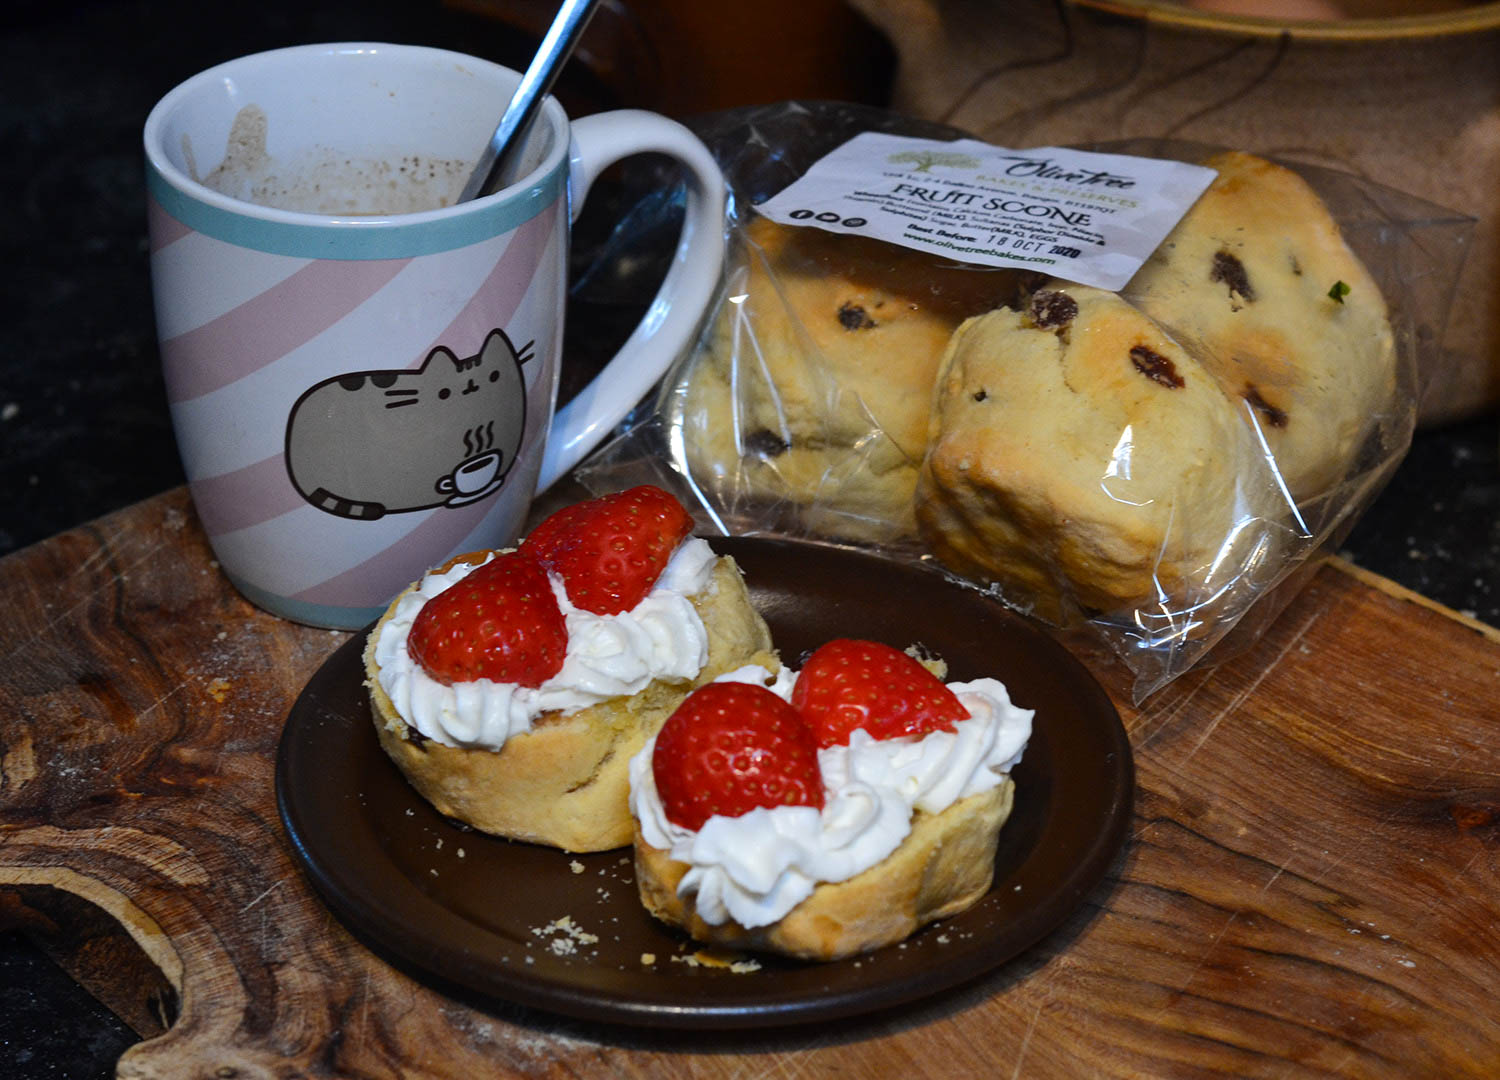 Local Scones with Strawberrys and Cream